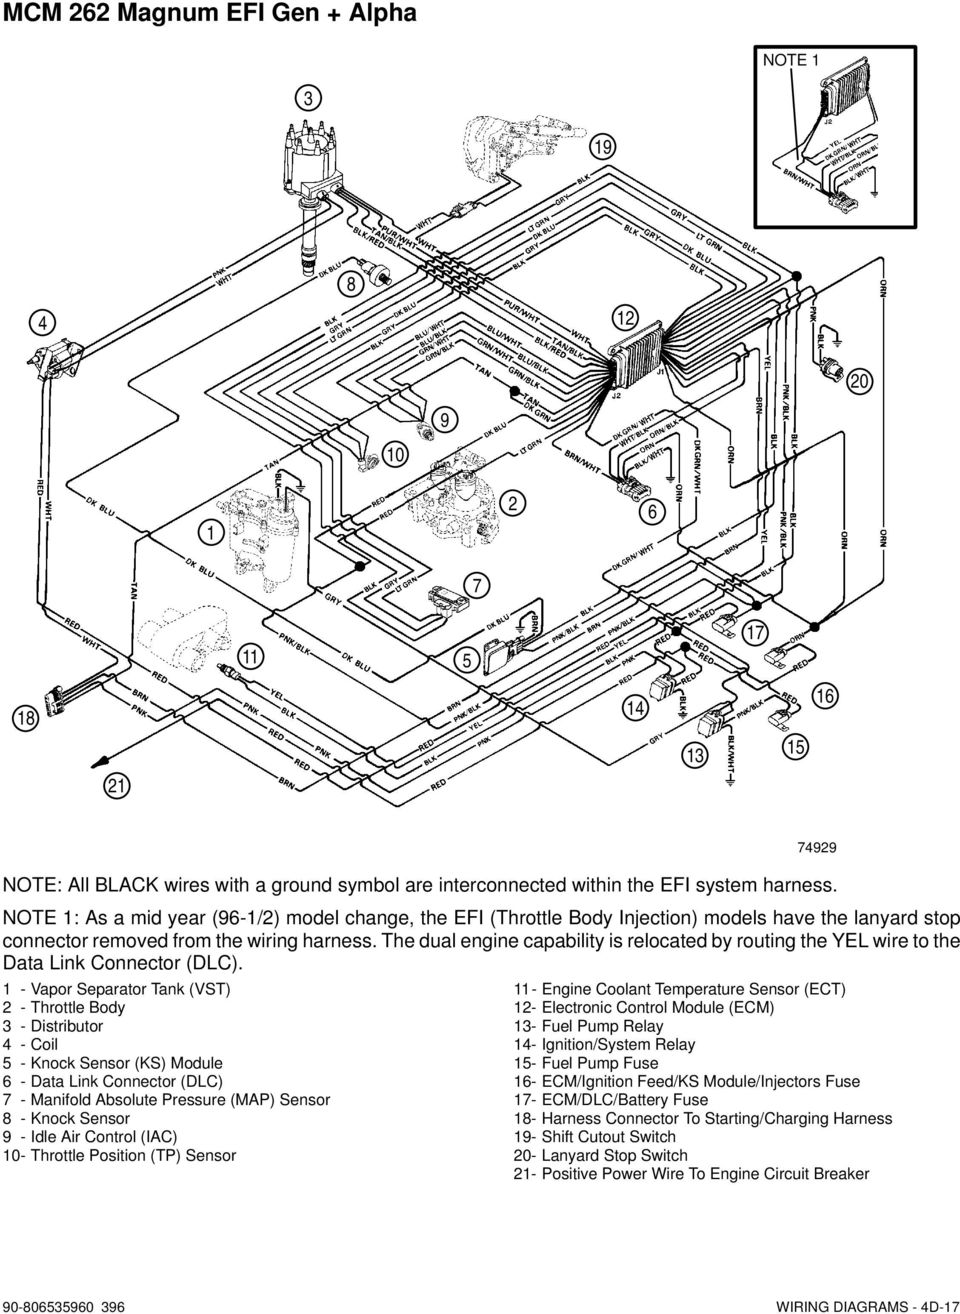 electrical systems wiring diagrams pdf  the dual engine capability is relocated by routing the ye wire to the data ink onnector